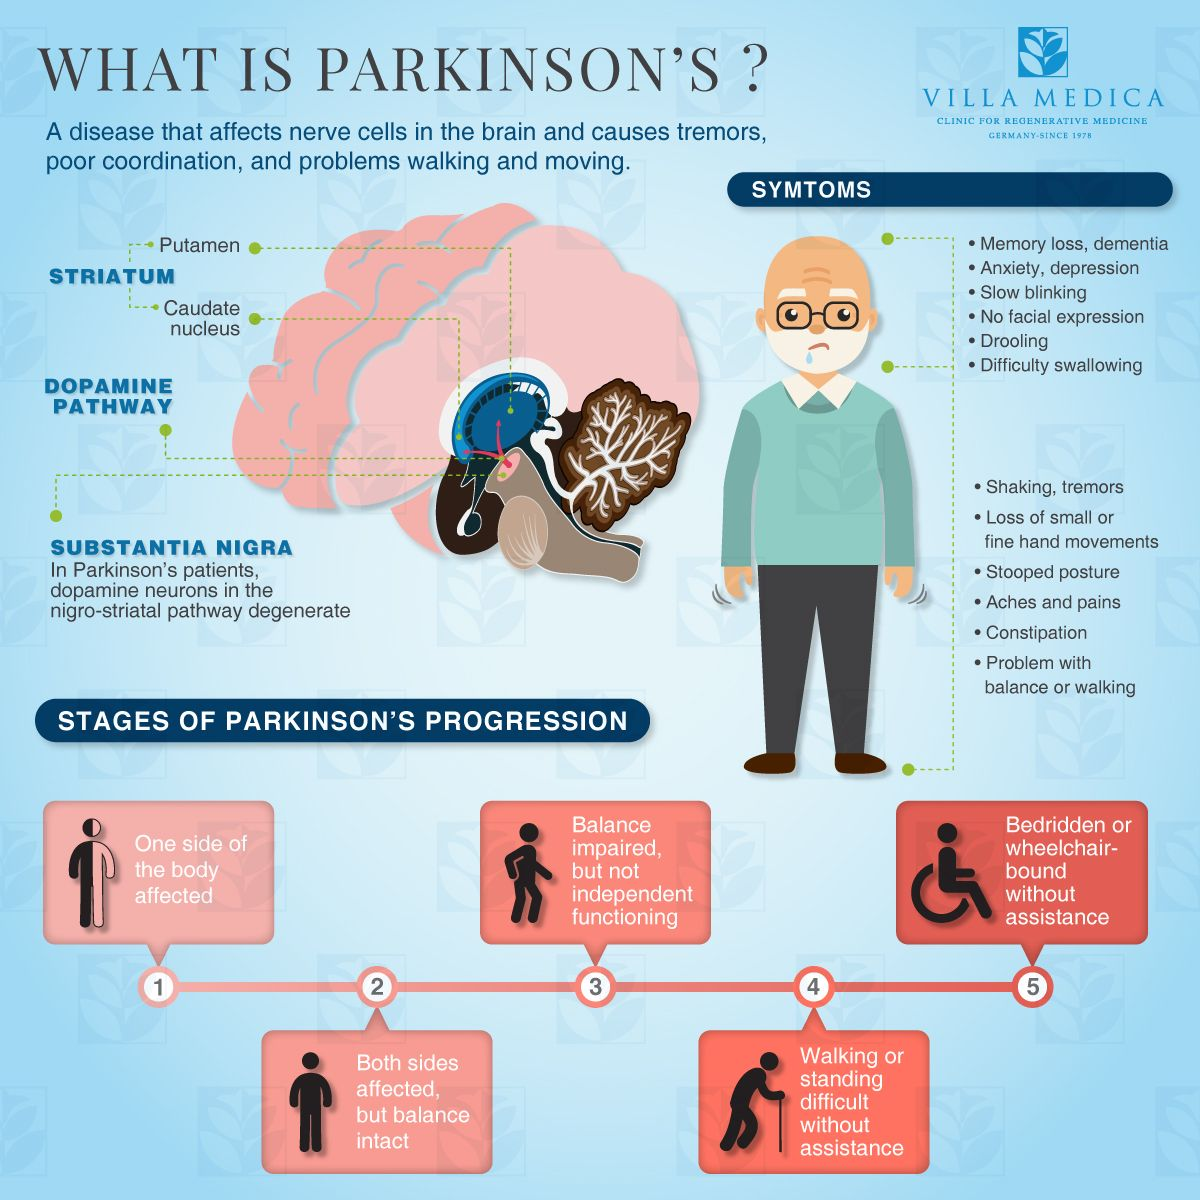 An overview of Parkinson's Disease. (Credit: Villa Medica)